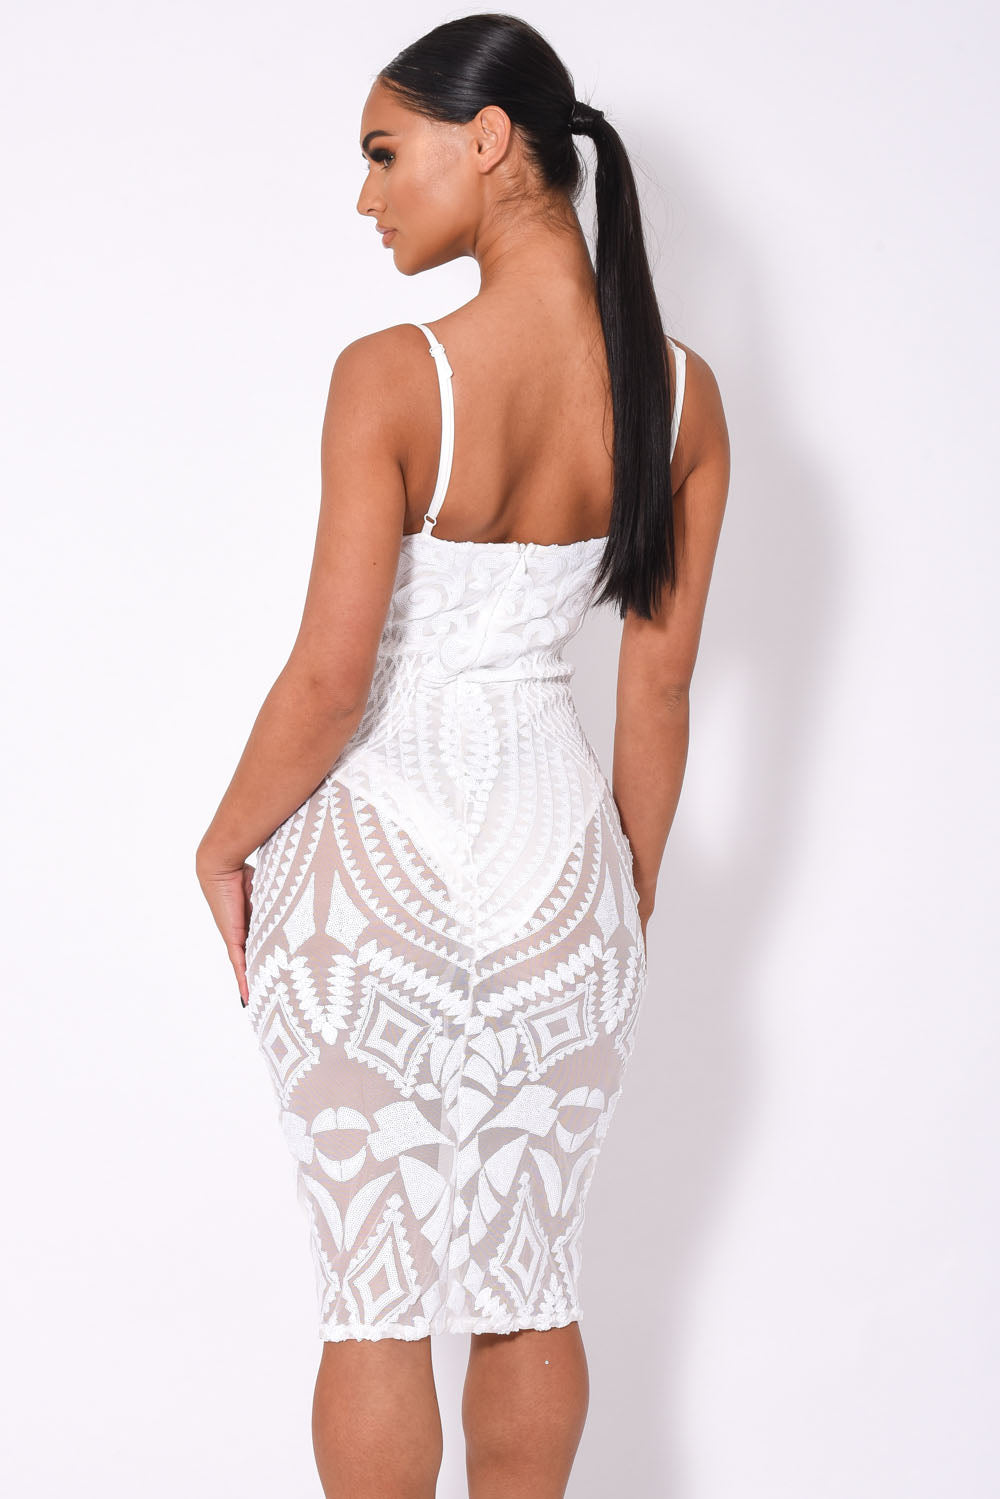 Body On Me Luxe White Sequin Sheer Bodysuit Midi Dress